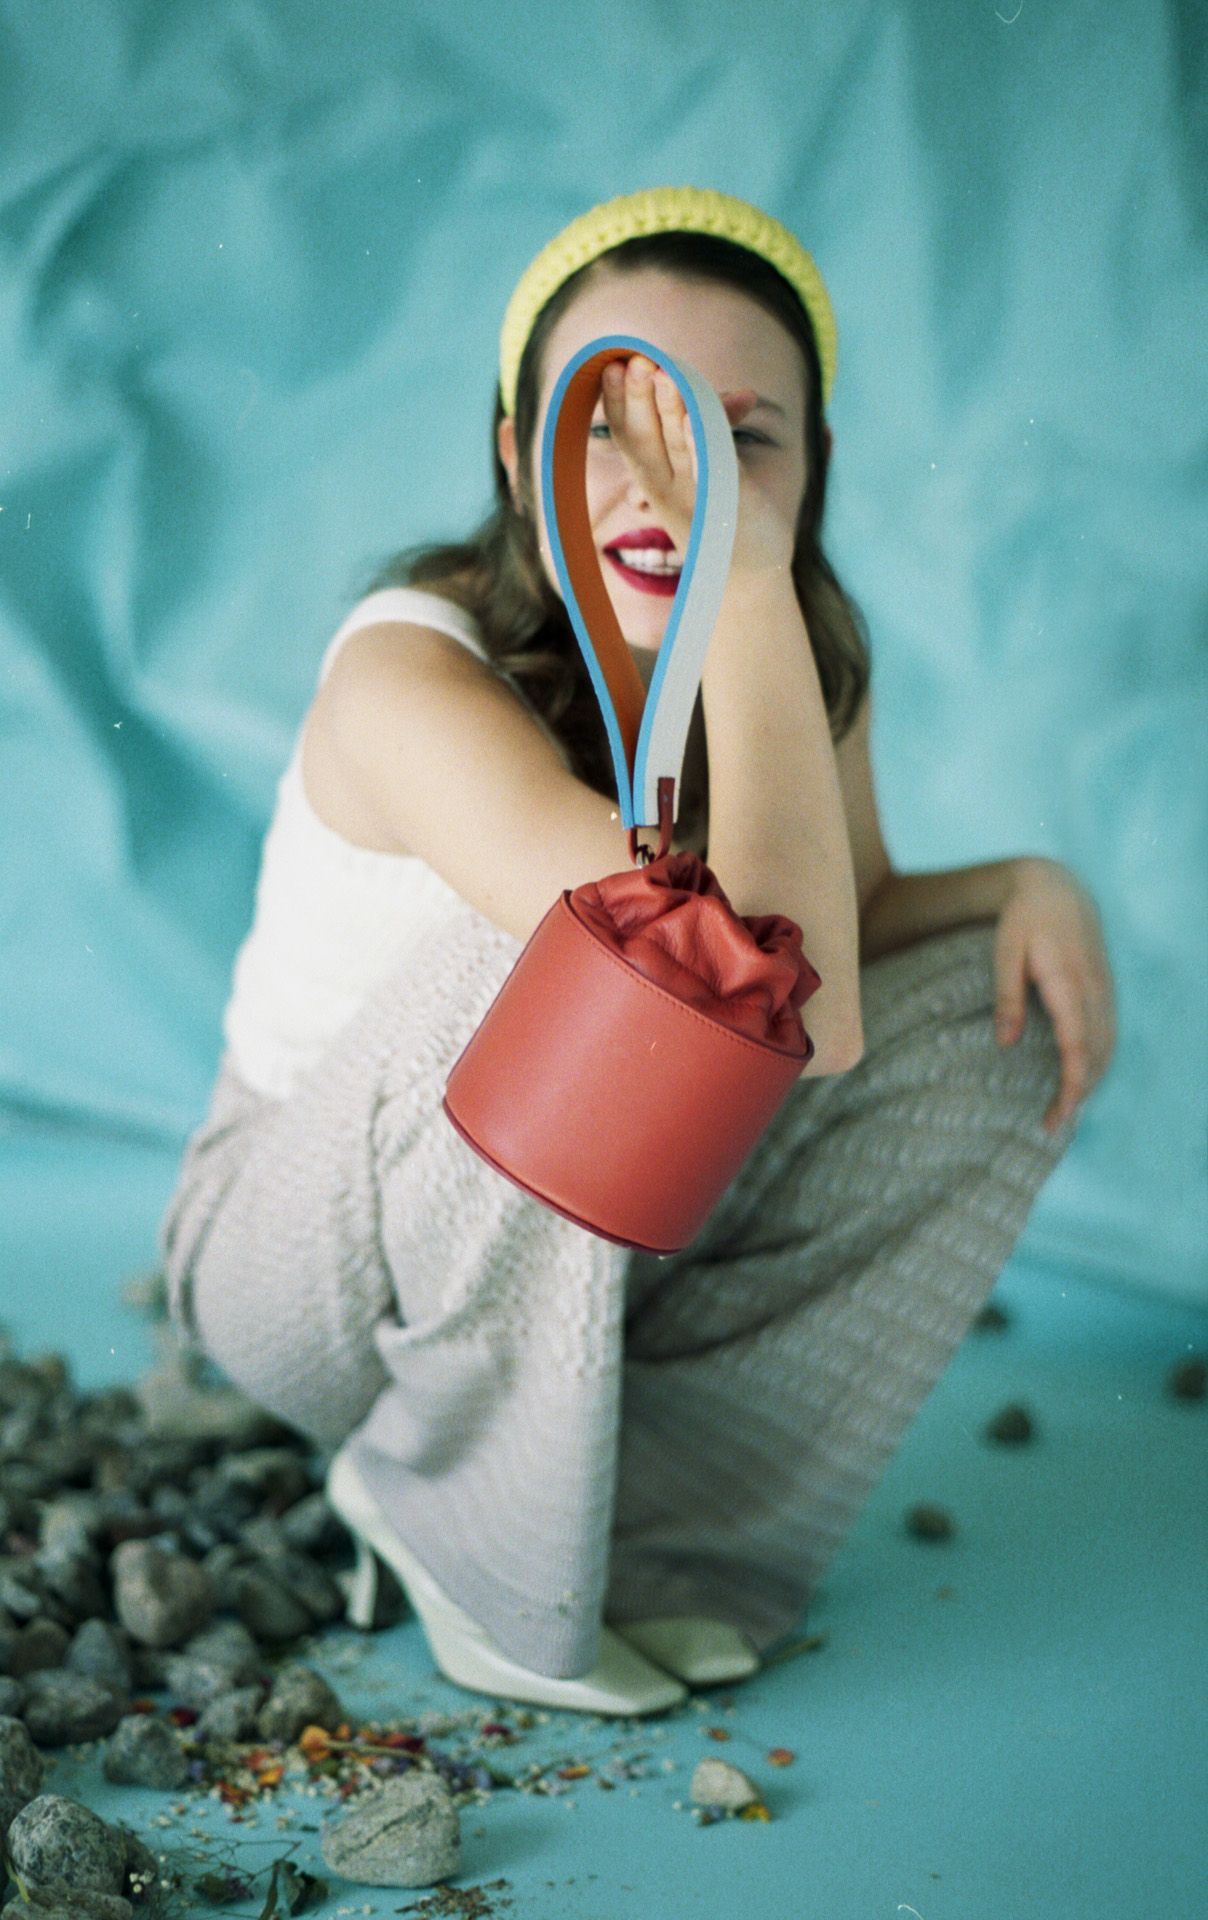 female model wearing crocheted white top with grey pants and white heels holding tube red leather bag by it's large white stripe in front of her face on light blue background for bouquet Montreal-brand Spring-Summer 2020 campaign with styling and artistic direction by Studio TB